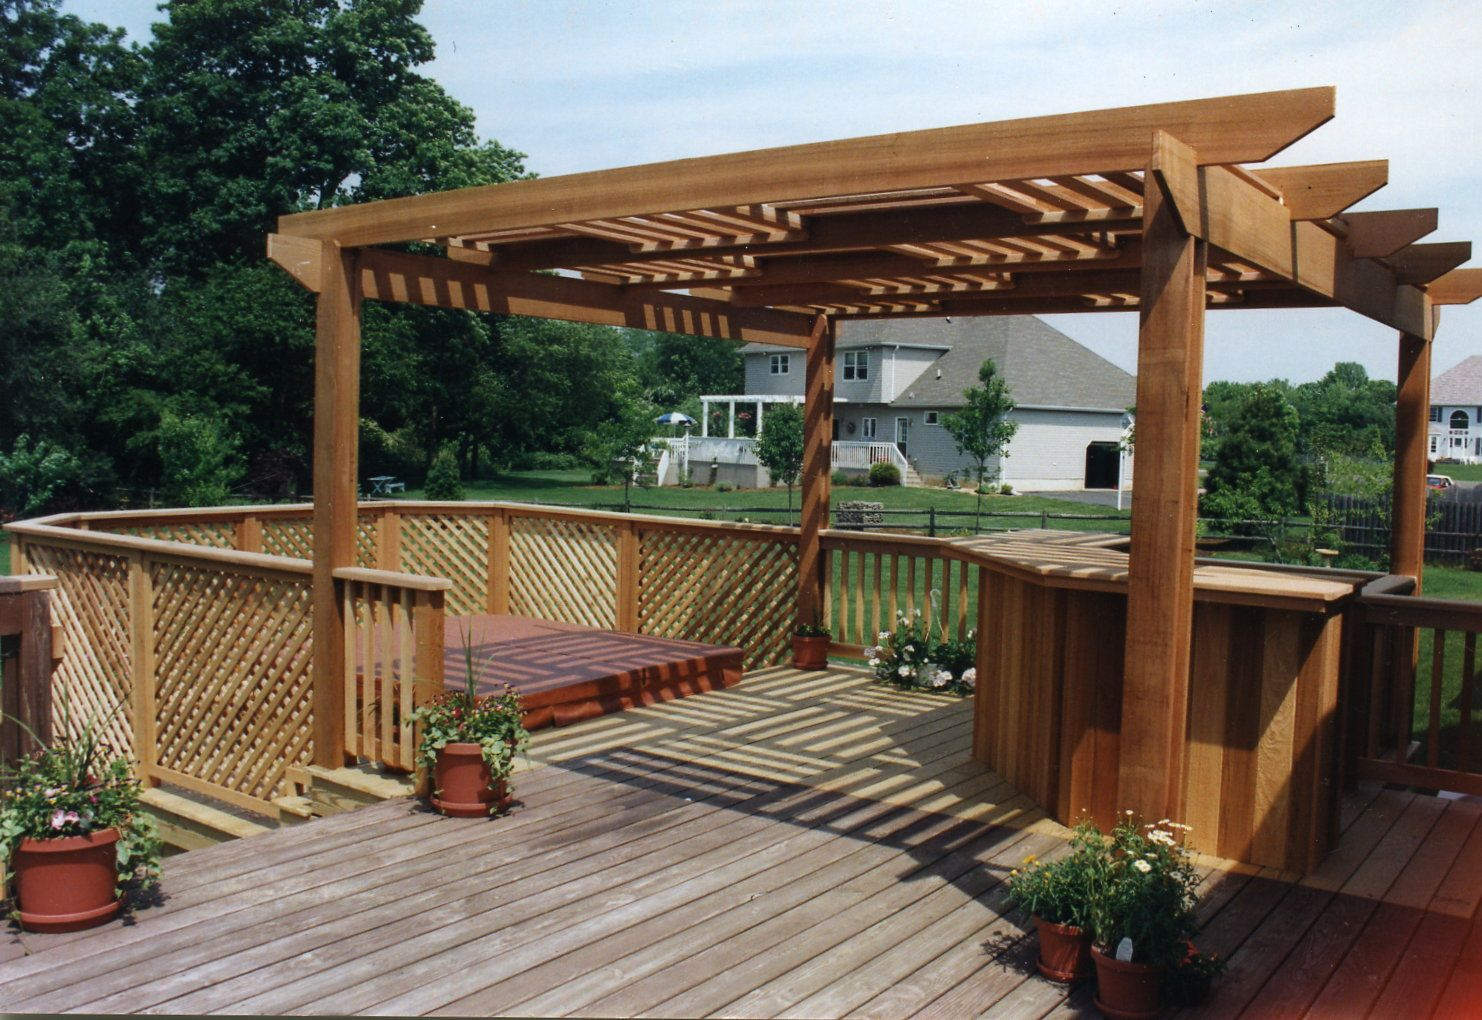 deck with pergola and hot tub  nj carl u0026 39 s fencing  decking and home improvements  bycarls com